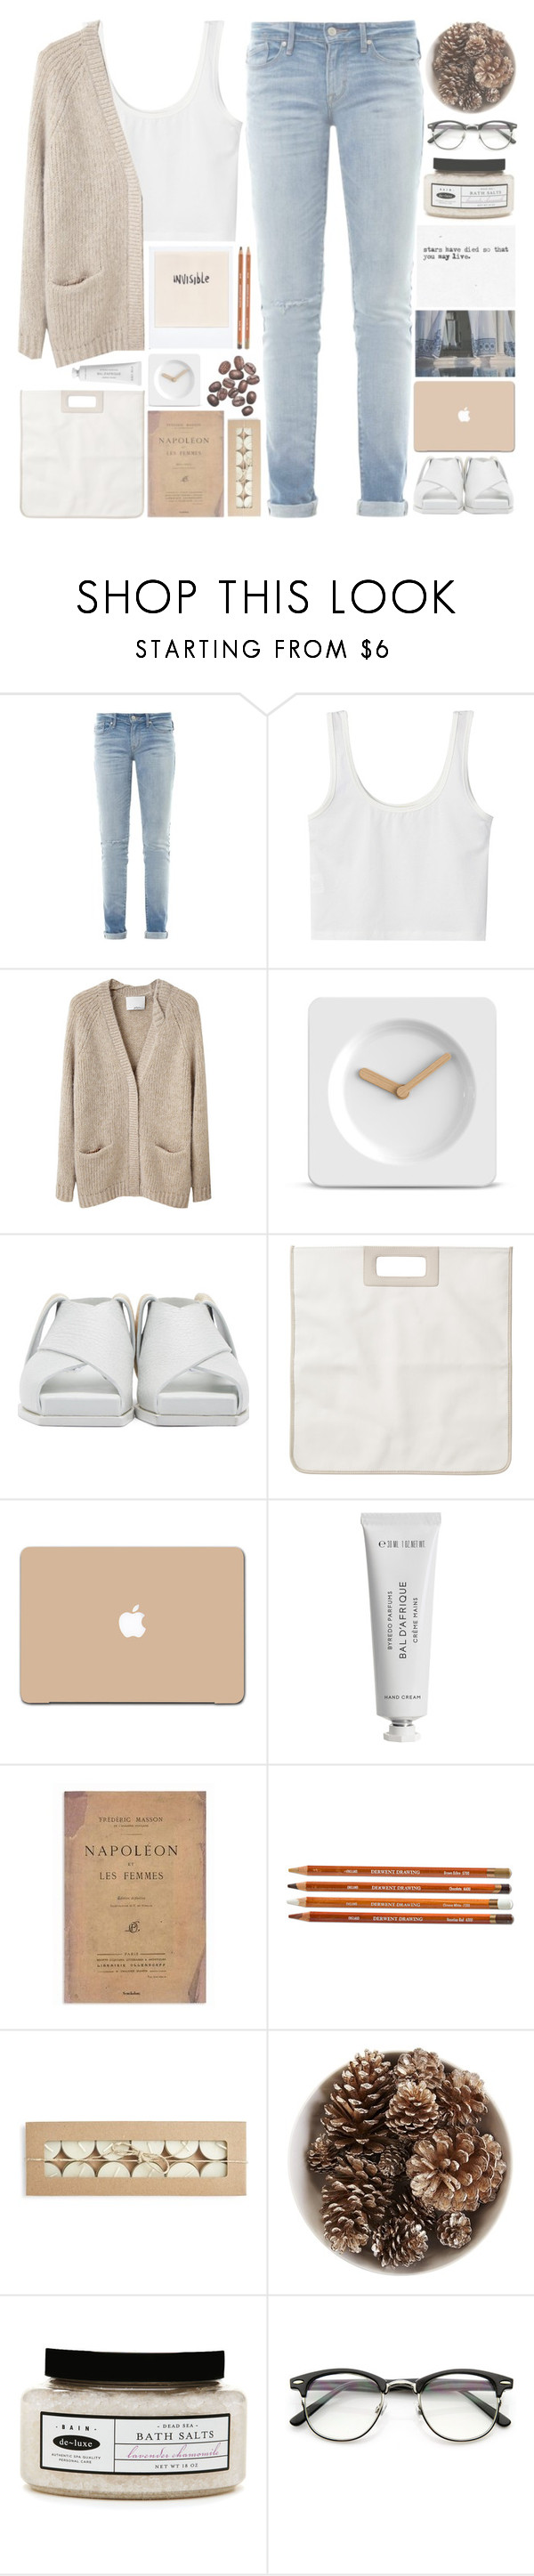 """Untitled #482"" by chantellehofland ❤ liked on Polyvore featuring Marc by Marc Jacobs, 3.1 Phillip Lim, LEFF Amsterdam, Acne Studios, Monki, 3M, Byredo, Pier 1 Imports and de-luxe"